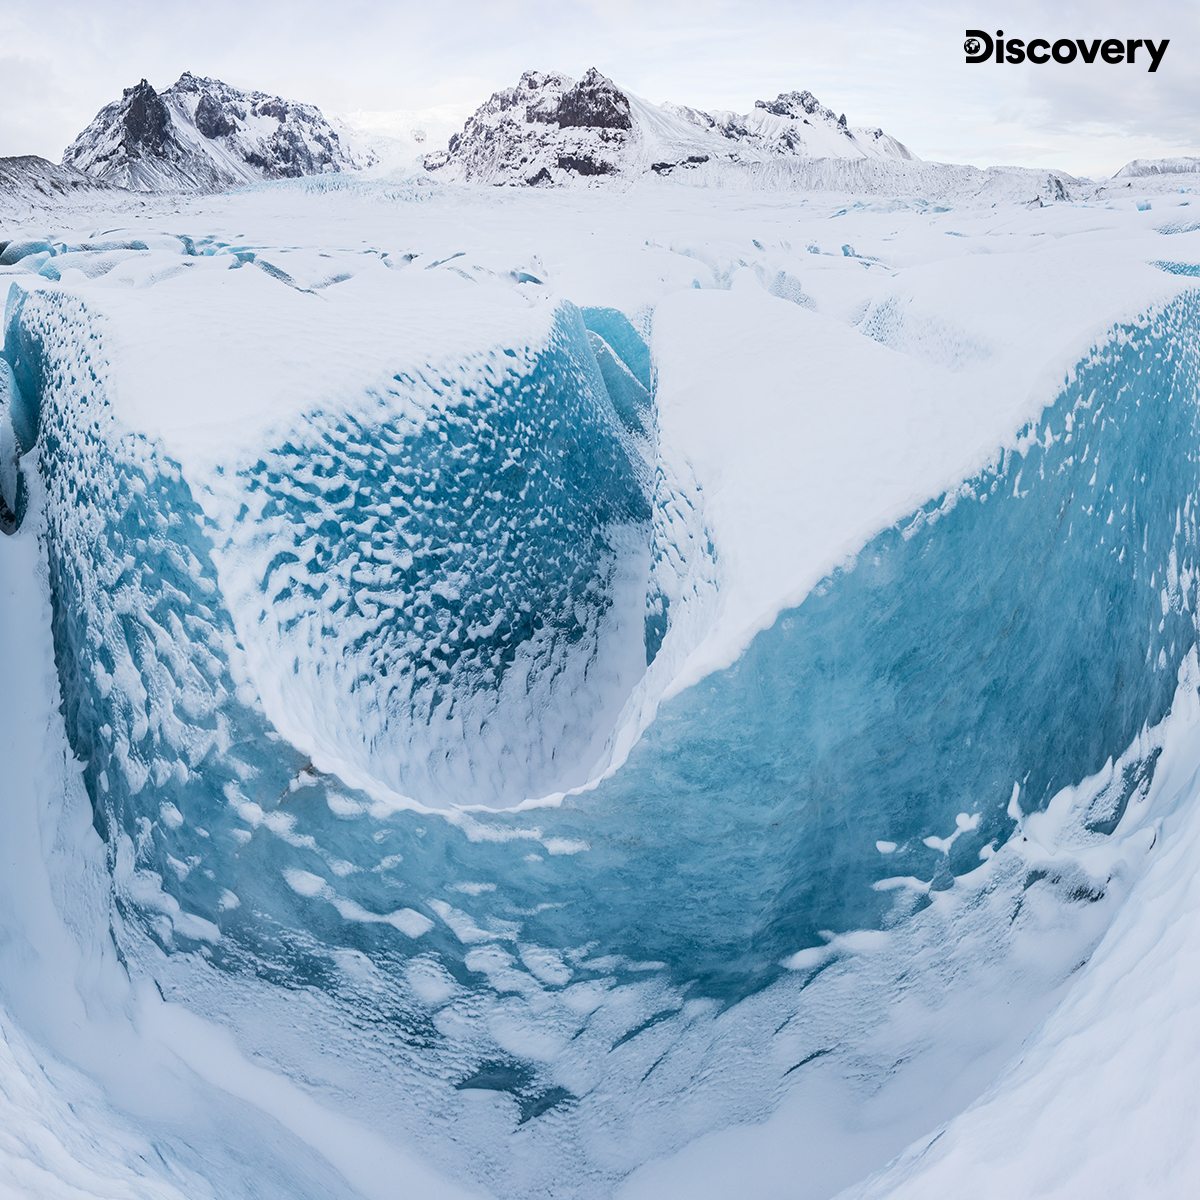 One of the youngest landmasses on the planet, Iceland was formed about 25 million years ago. The Vatnajökull National Park is an iconic volcanic region which is home to Vatnajökull, an ice cap that covers more than 8% of the island nation. #DiscoverEarth pic.twitter.com/6t4mUCtL0X